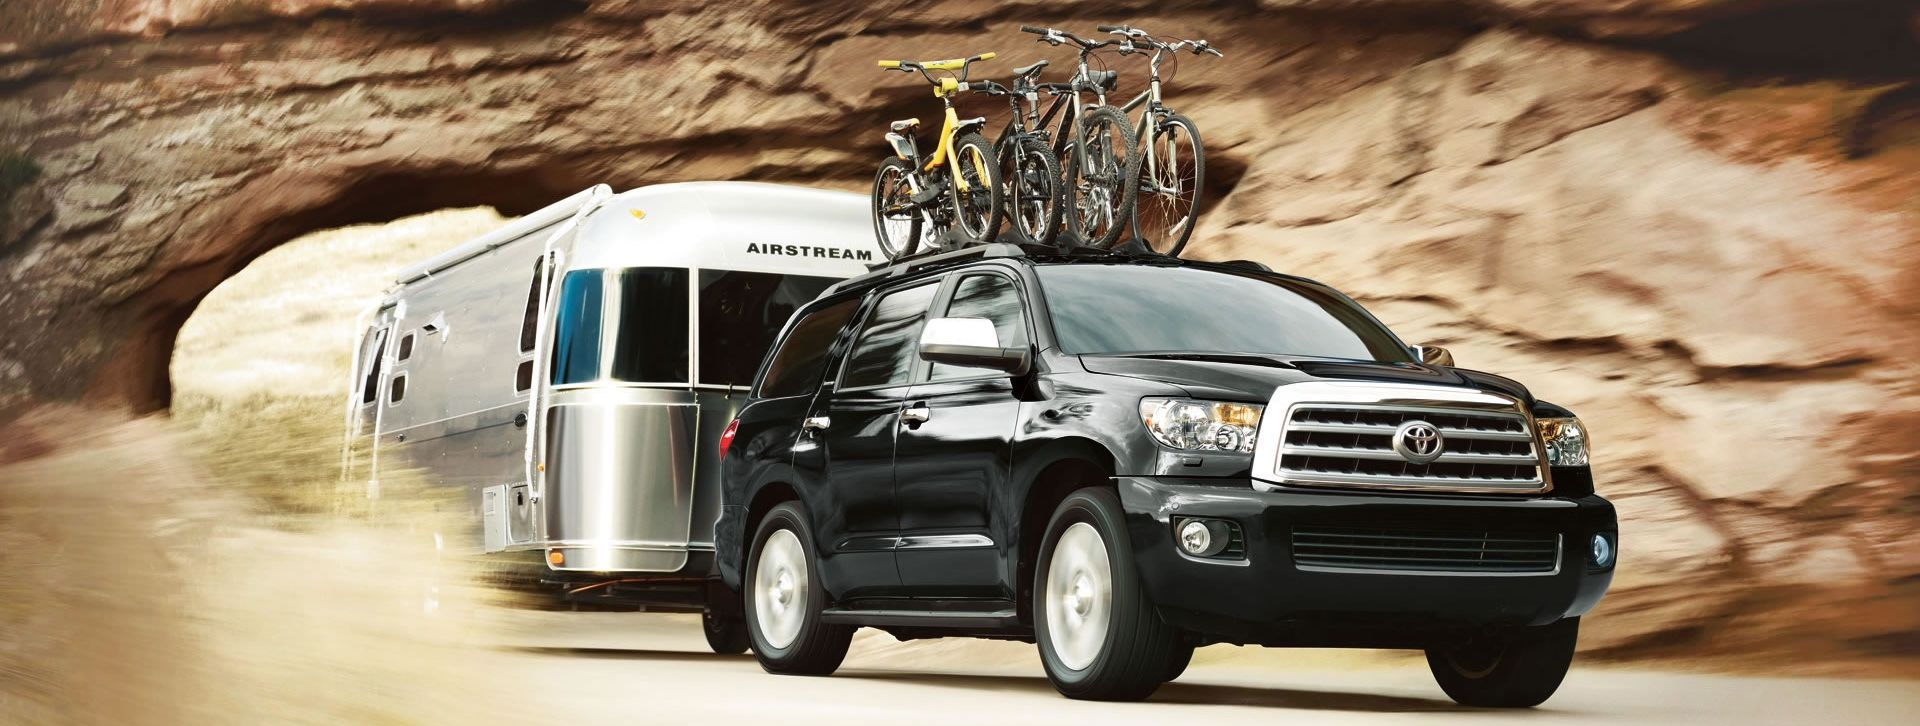 2017 Toyota Sequoia For Sale Near Overland Park Ks Molle Fuel Filter Location